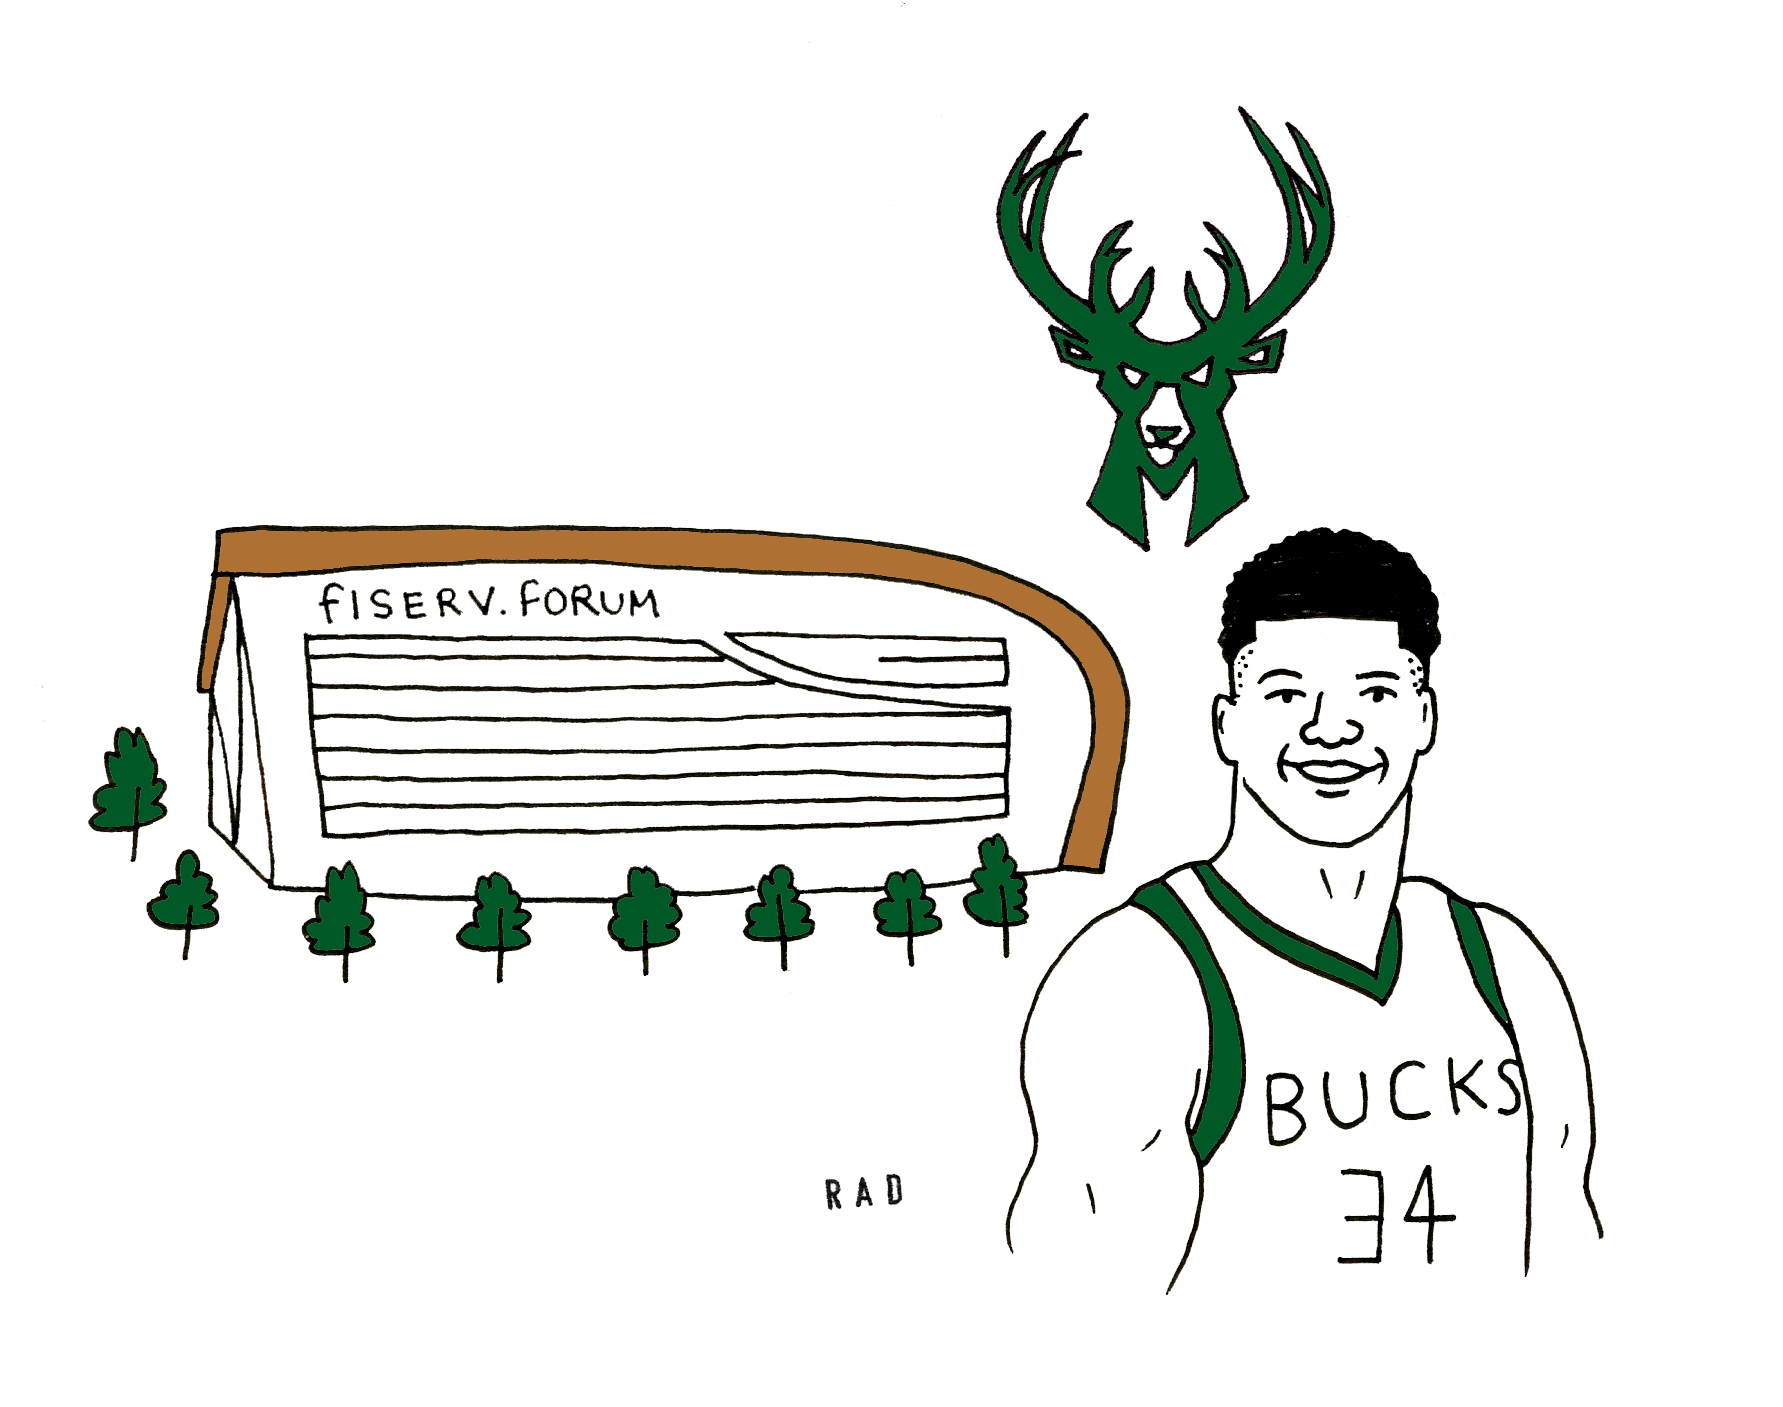 MilwaukeeBucks.jpg